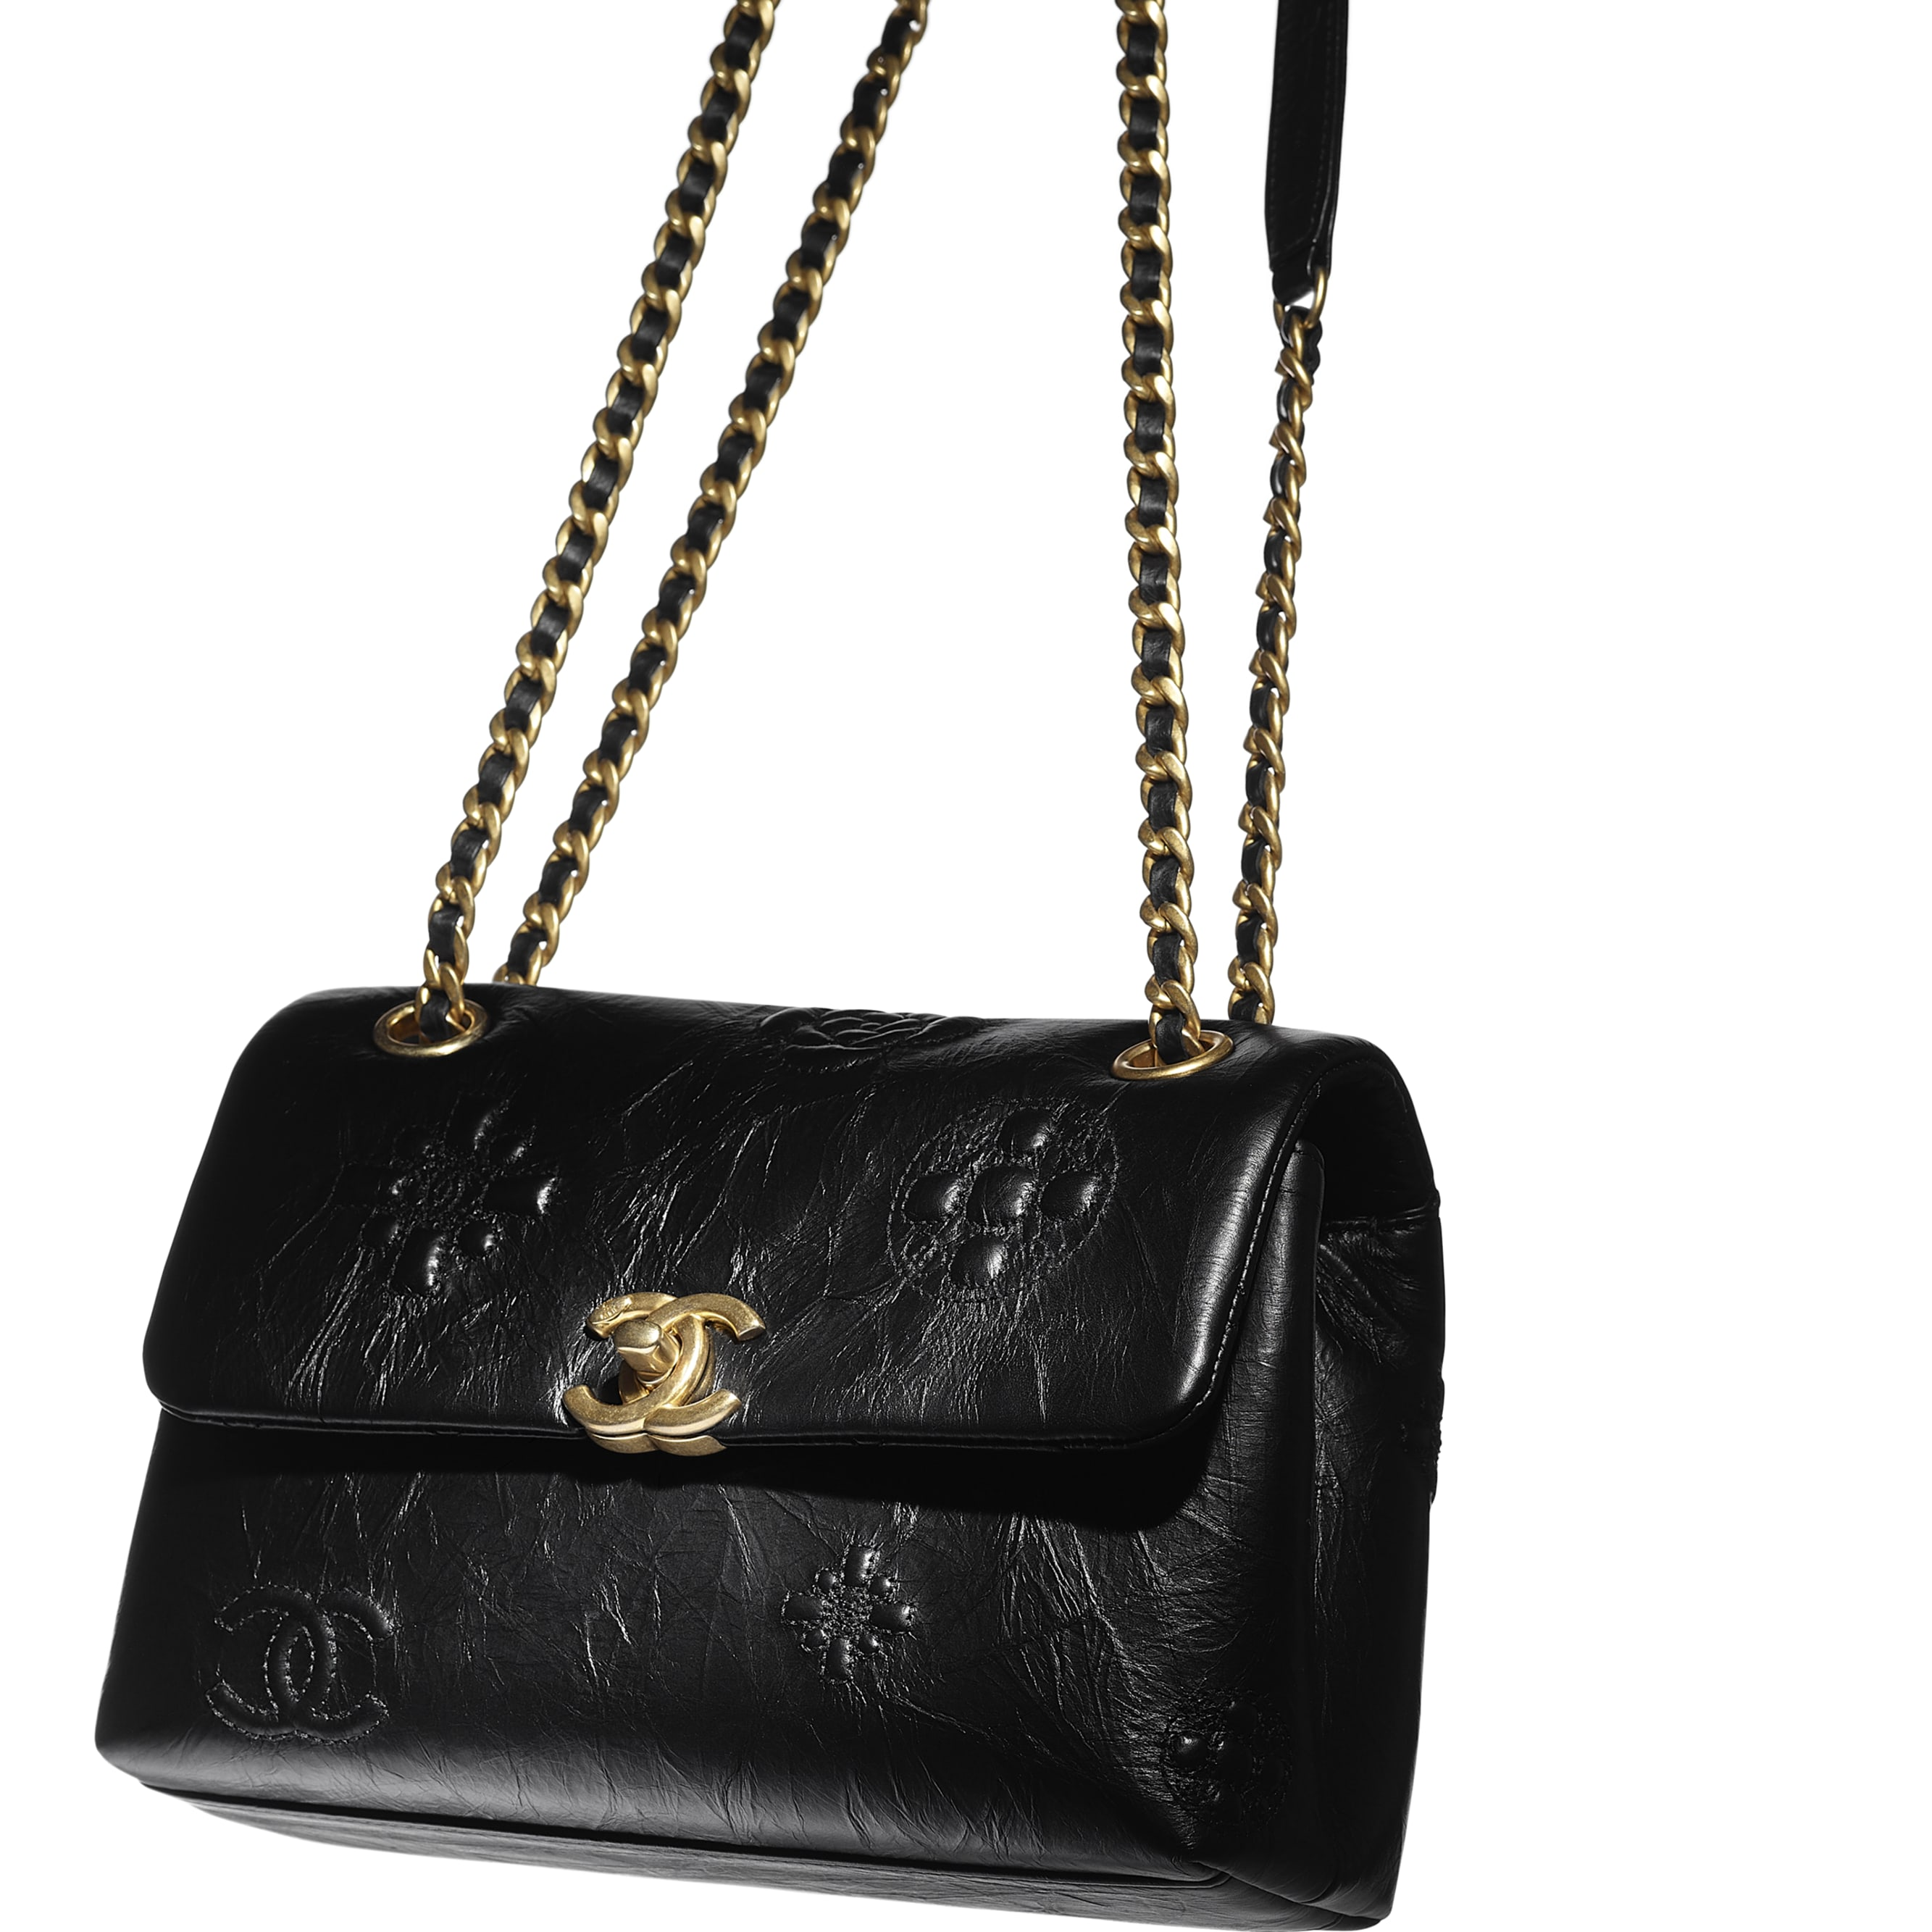 Small Flap Bag - Black - Crumpled Calfskin & Gold Metal - CHANEL - Extra view - see standard sized version